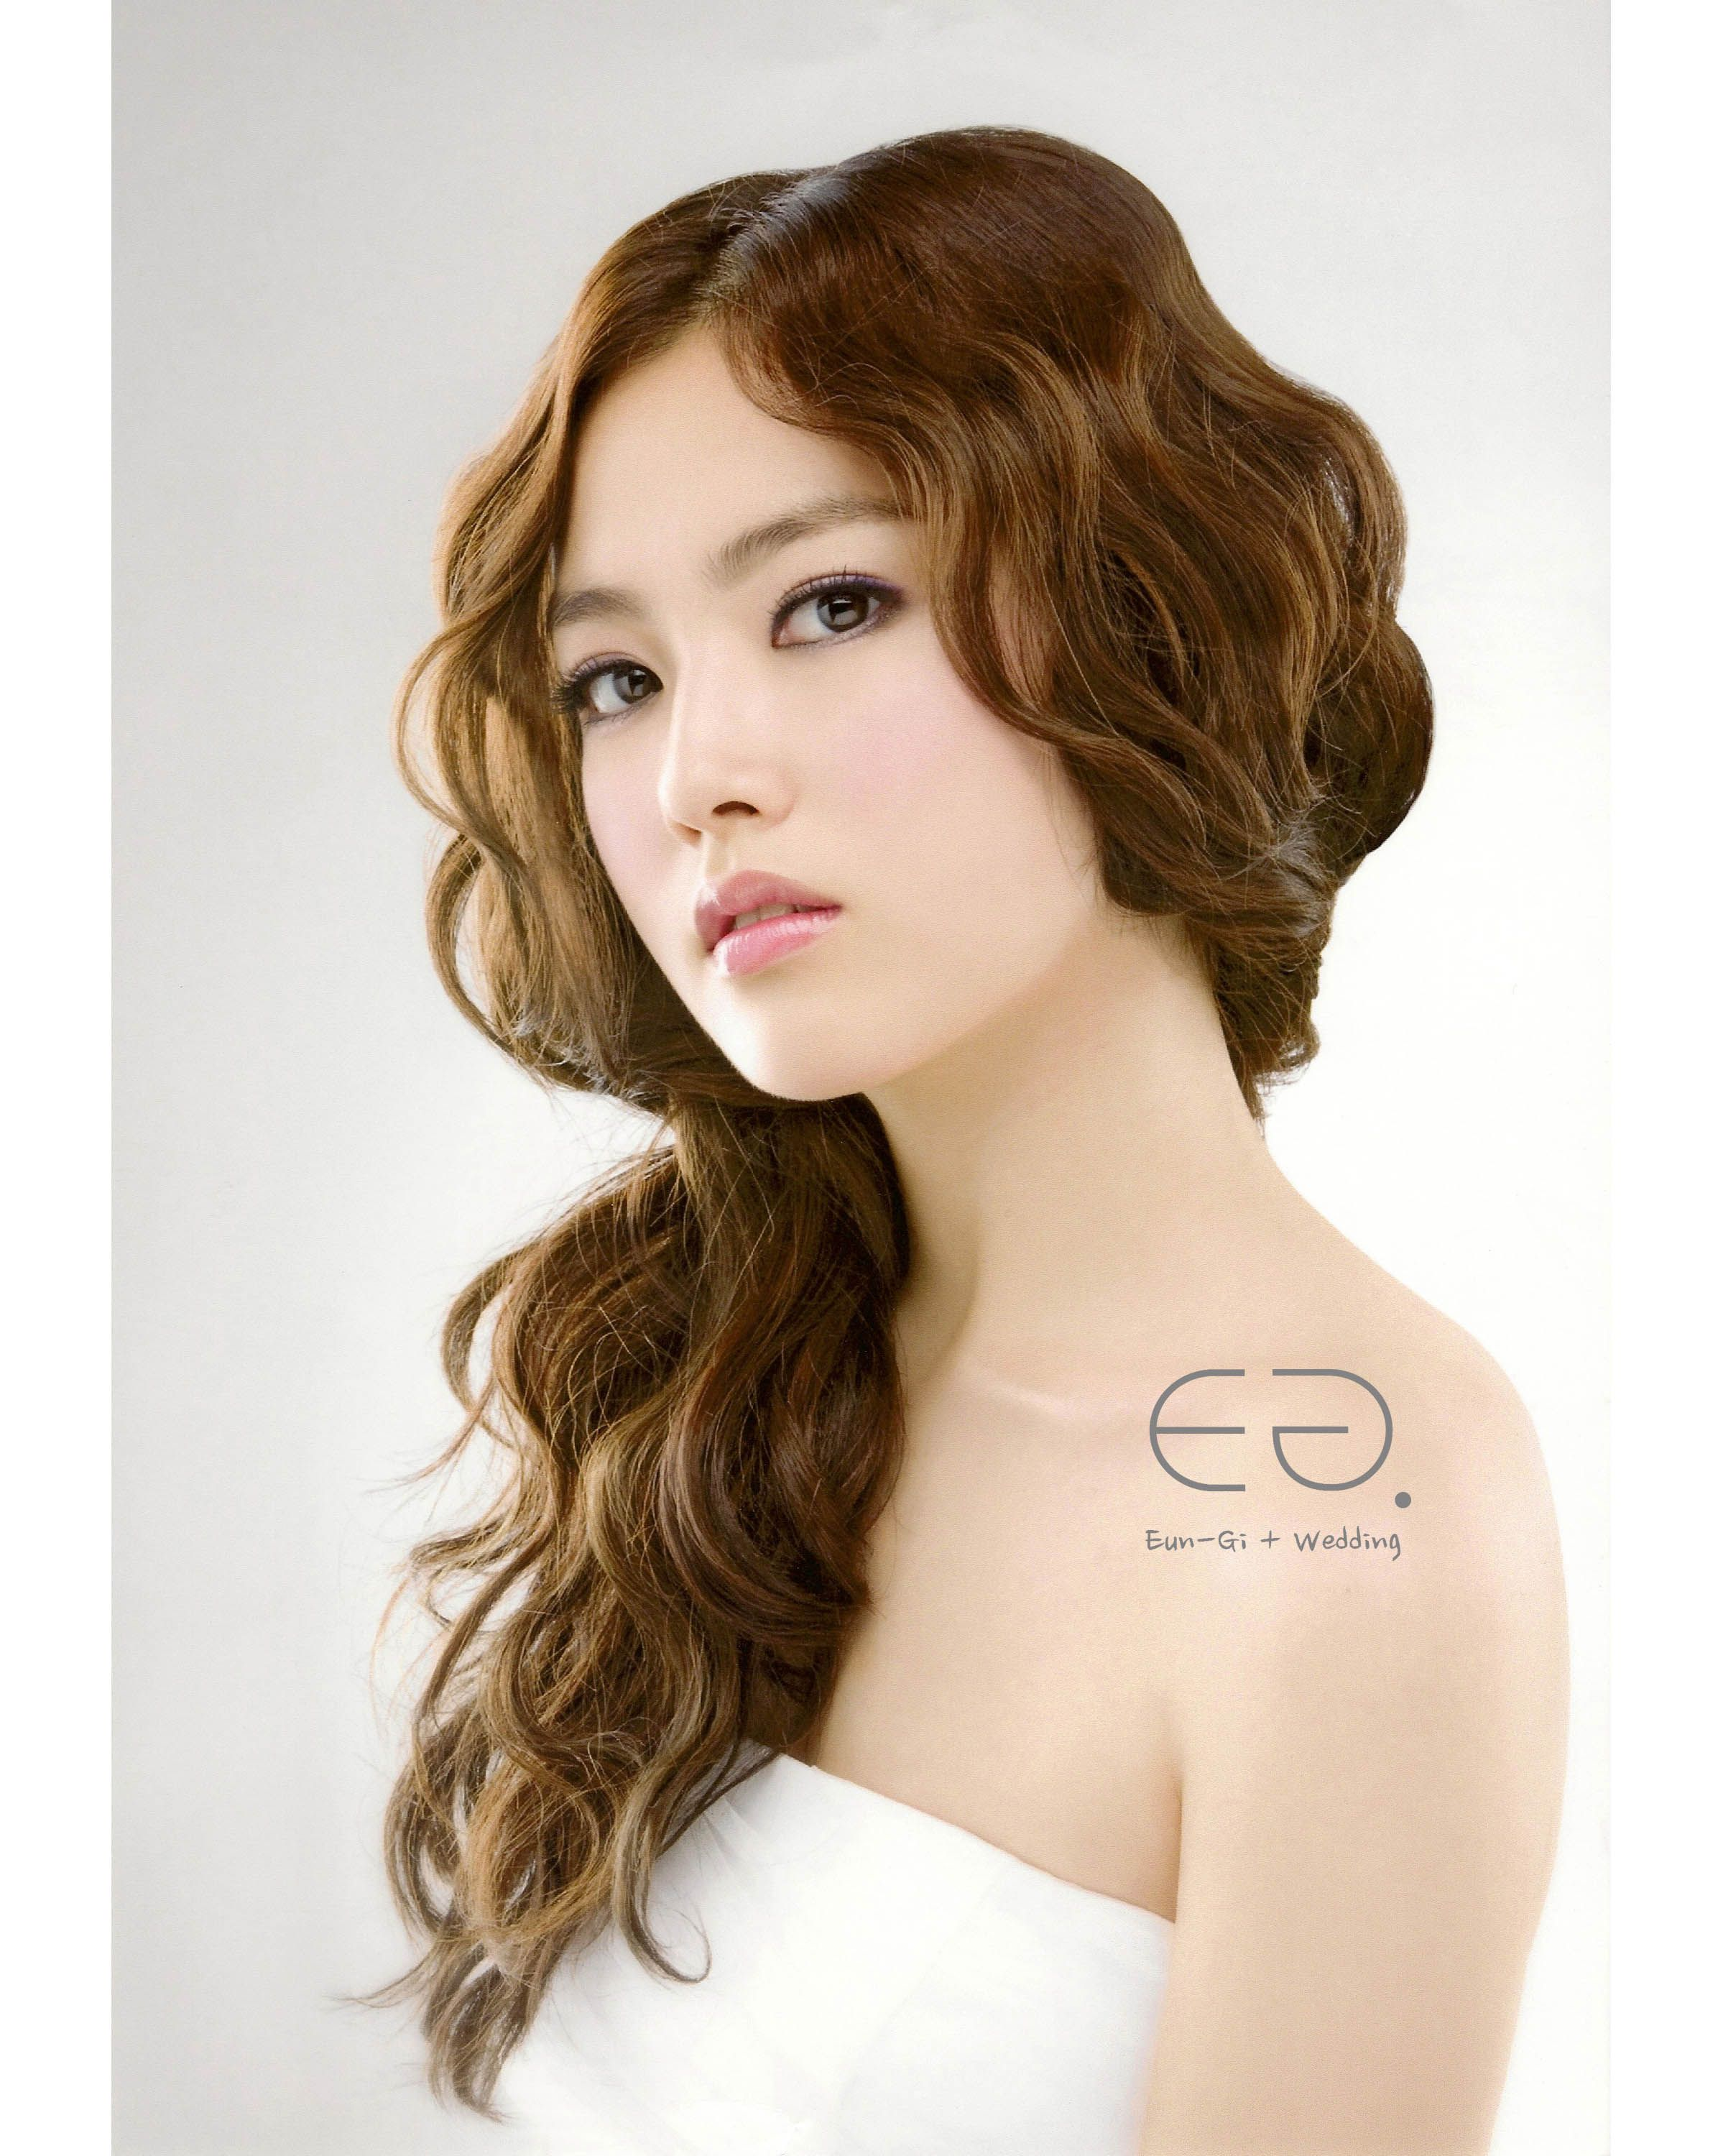 ♡korean wedding make-up & hairstyle| eun-gi + wedding singapore